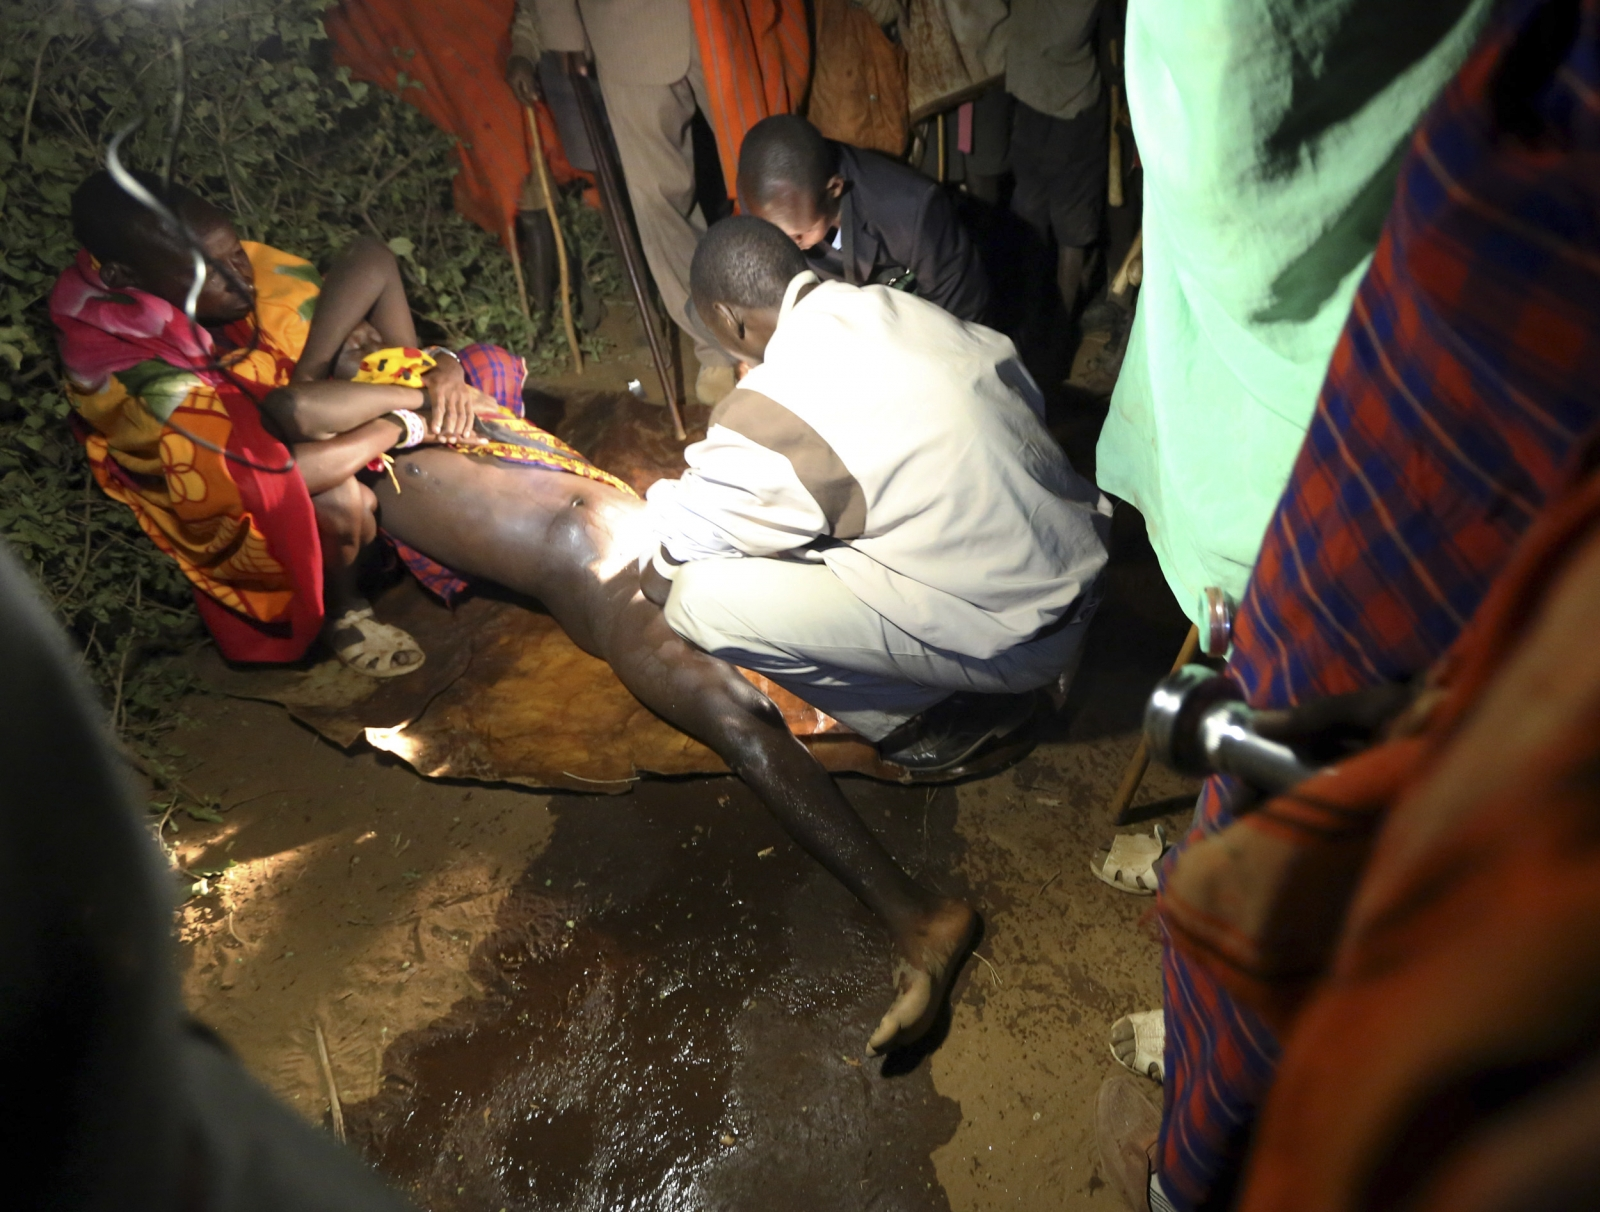 Kenya Men Circumcised By Force In Luhya Tribe Ceremony-1581